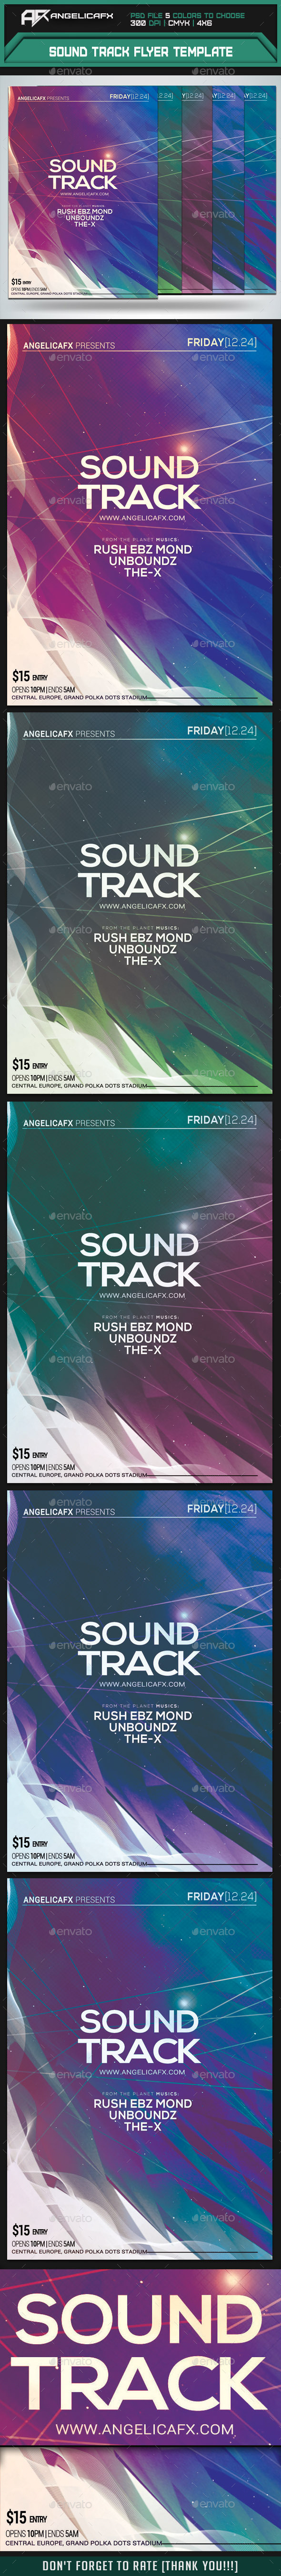 Sound Track Flyer Template - Clubs & Parties Events